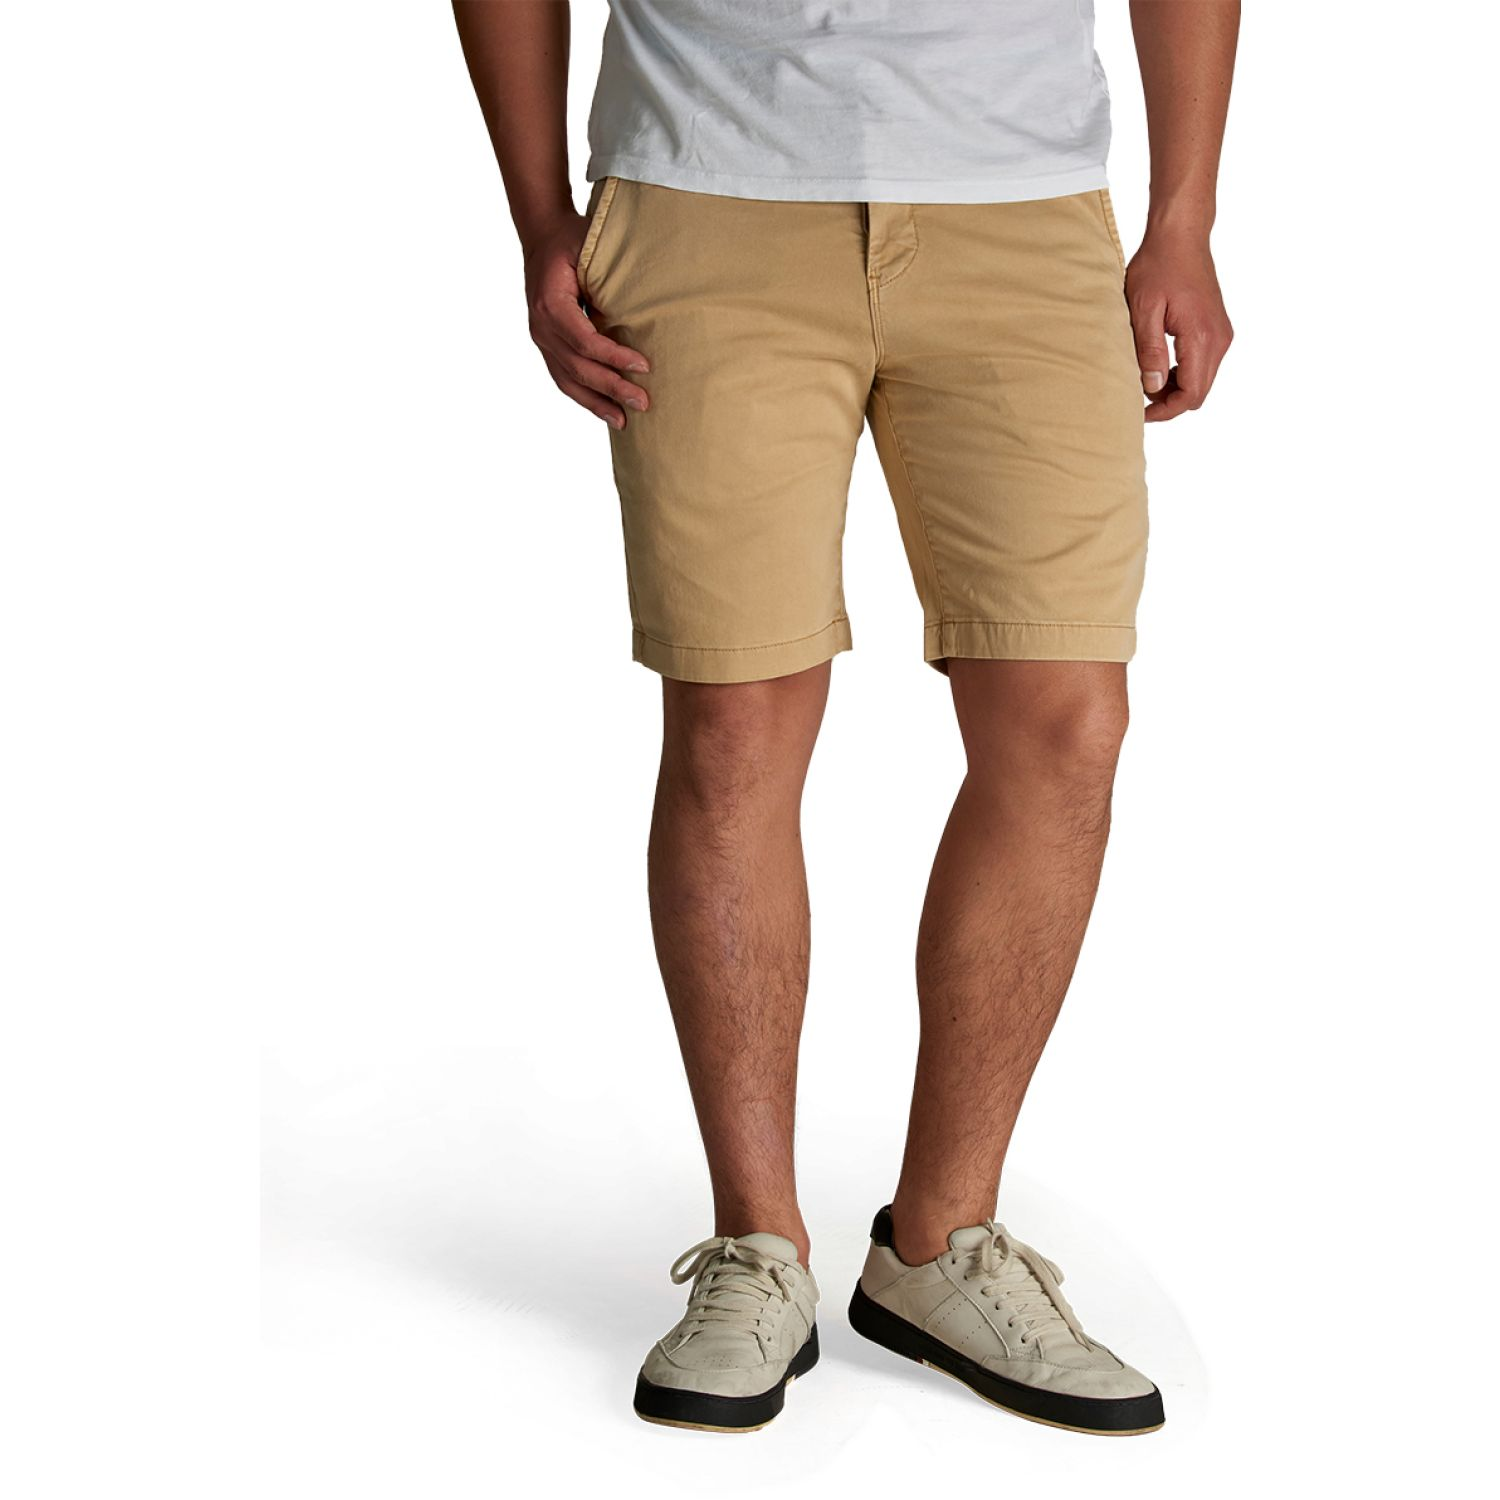 Octo Denim Co Short Leo Beige Beige Cargo